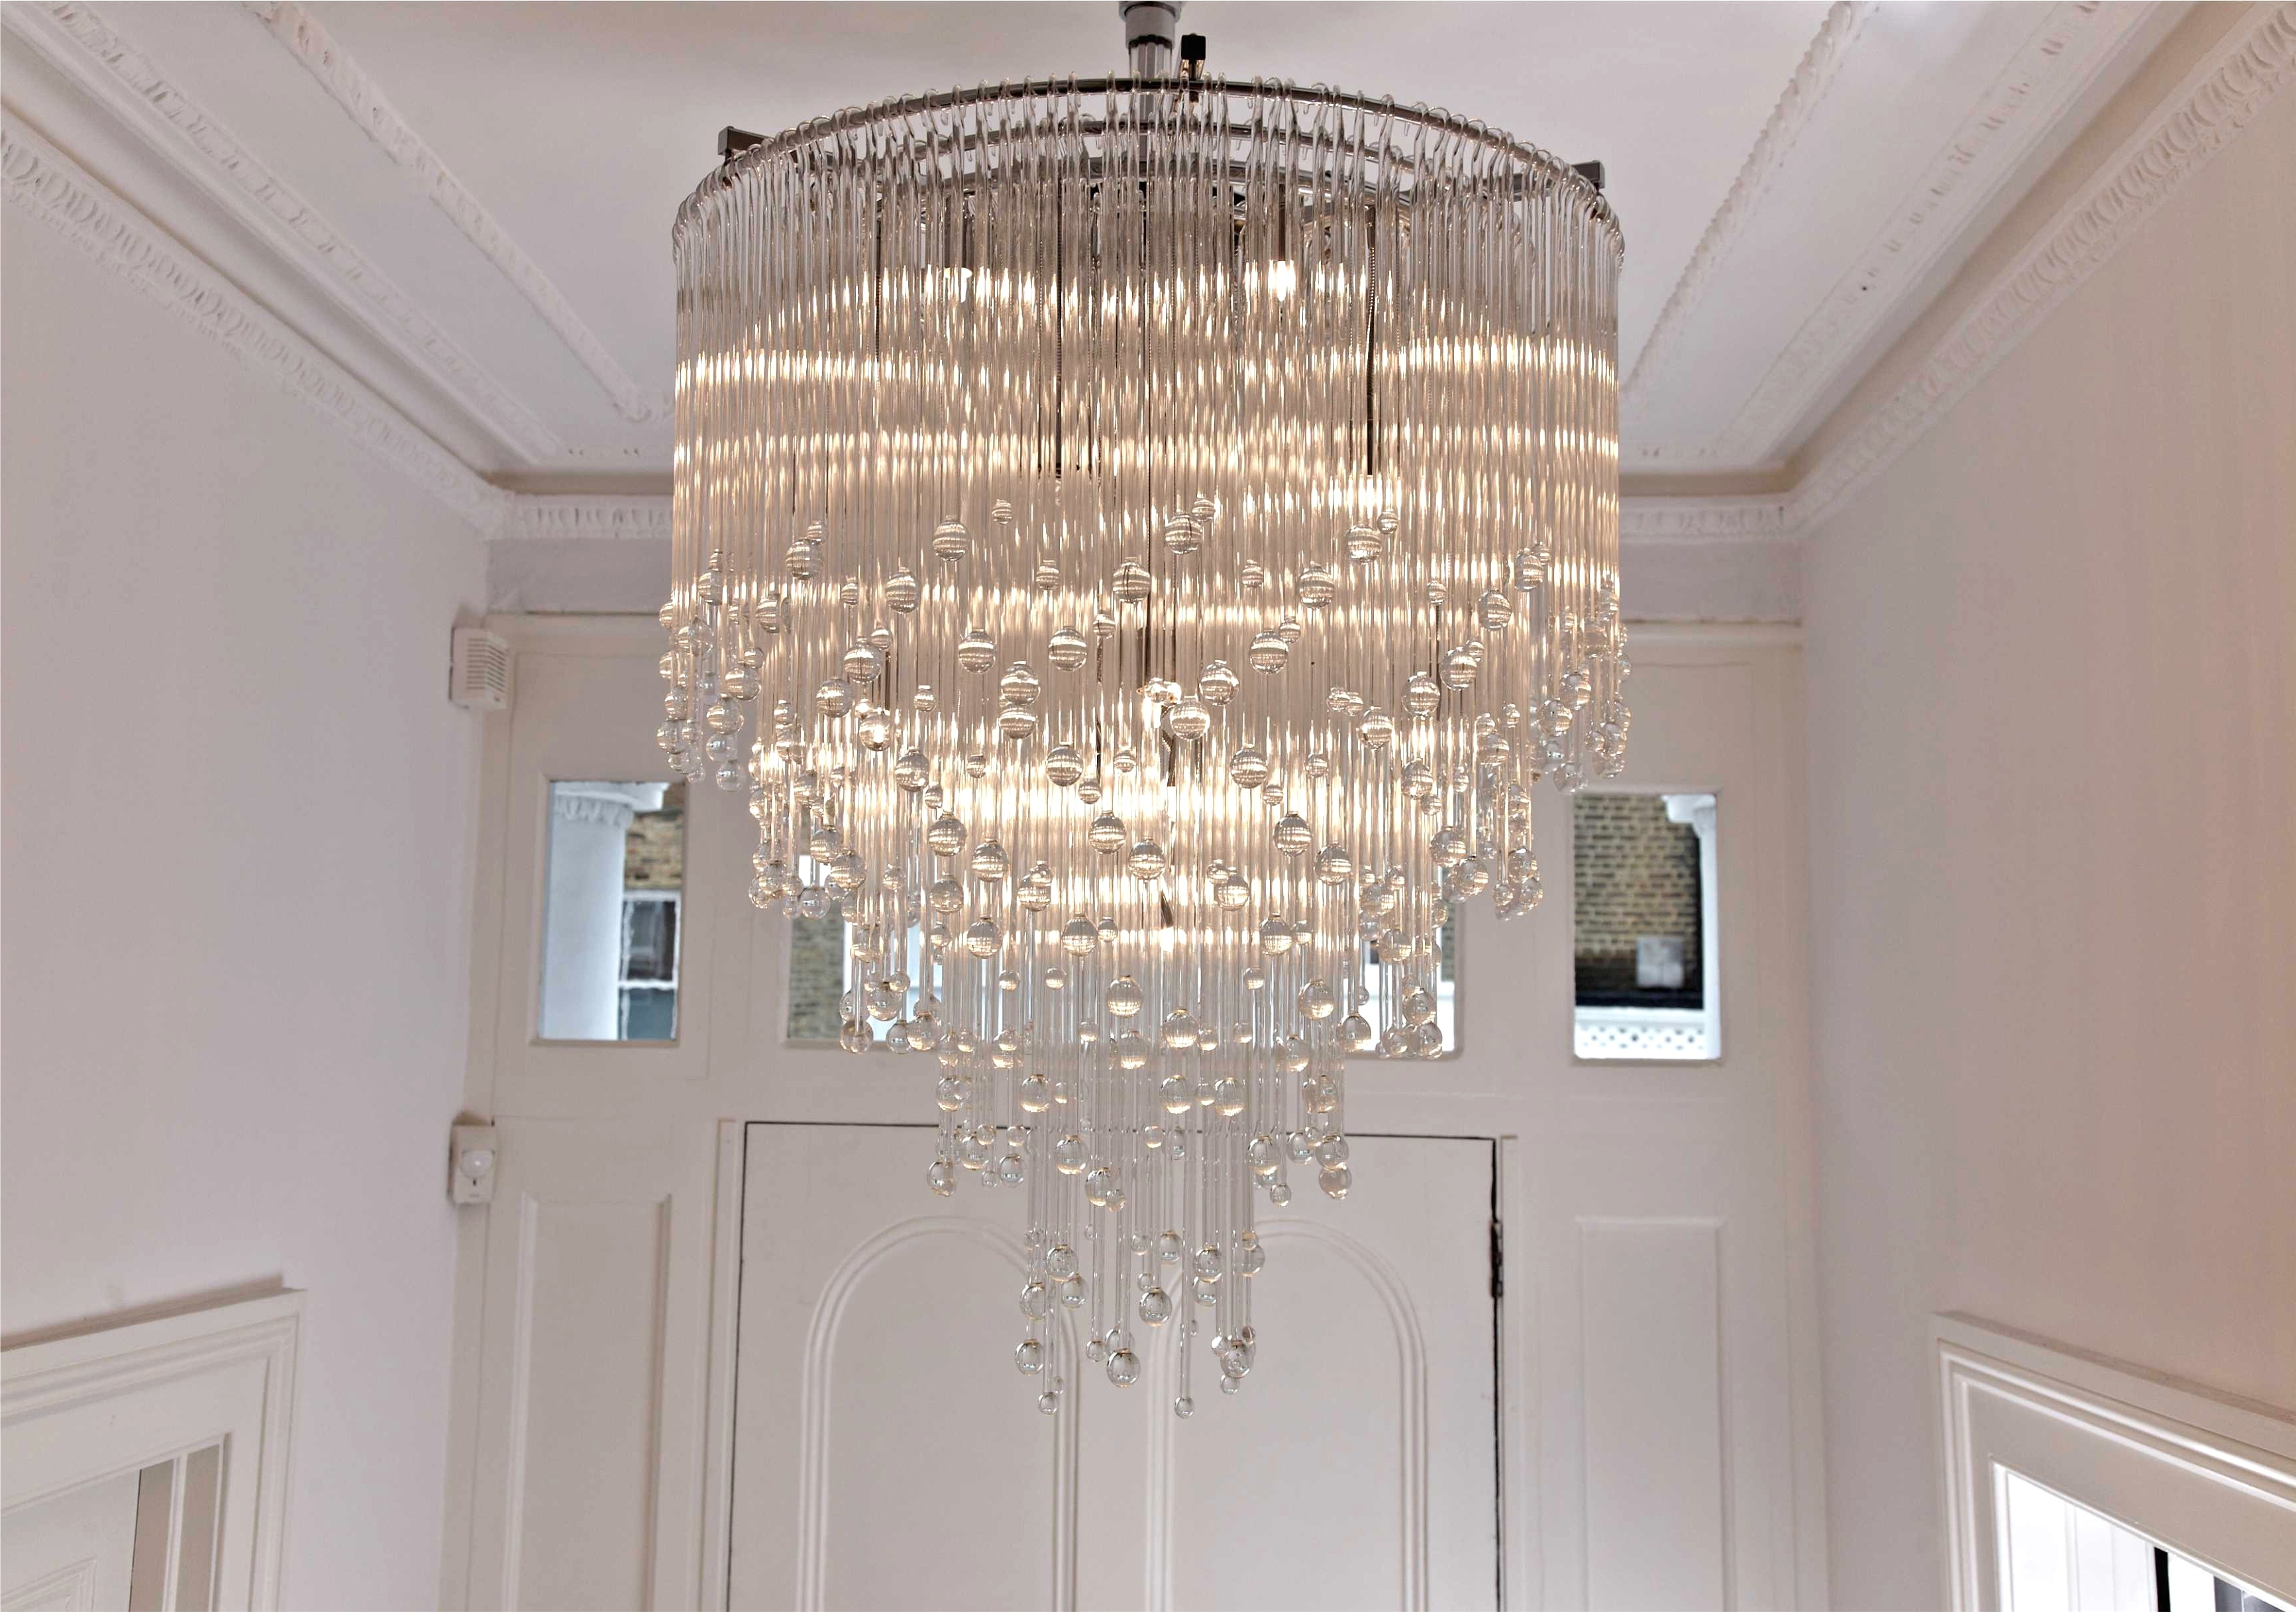 2017 Extra Large Modern Chandeliers Within Chandeliers Design : Amazing Extra Large Modern Chandeliers With Uk (View 3 of 15)